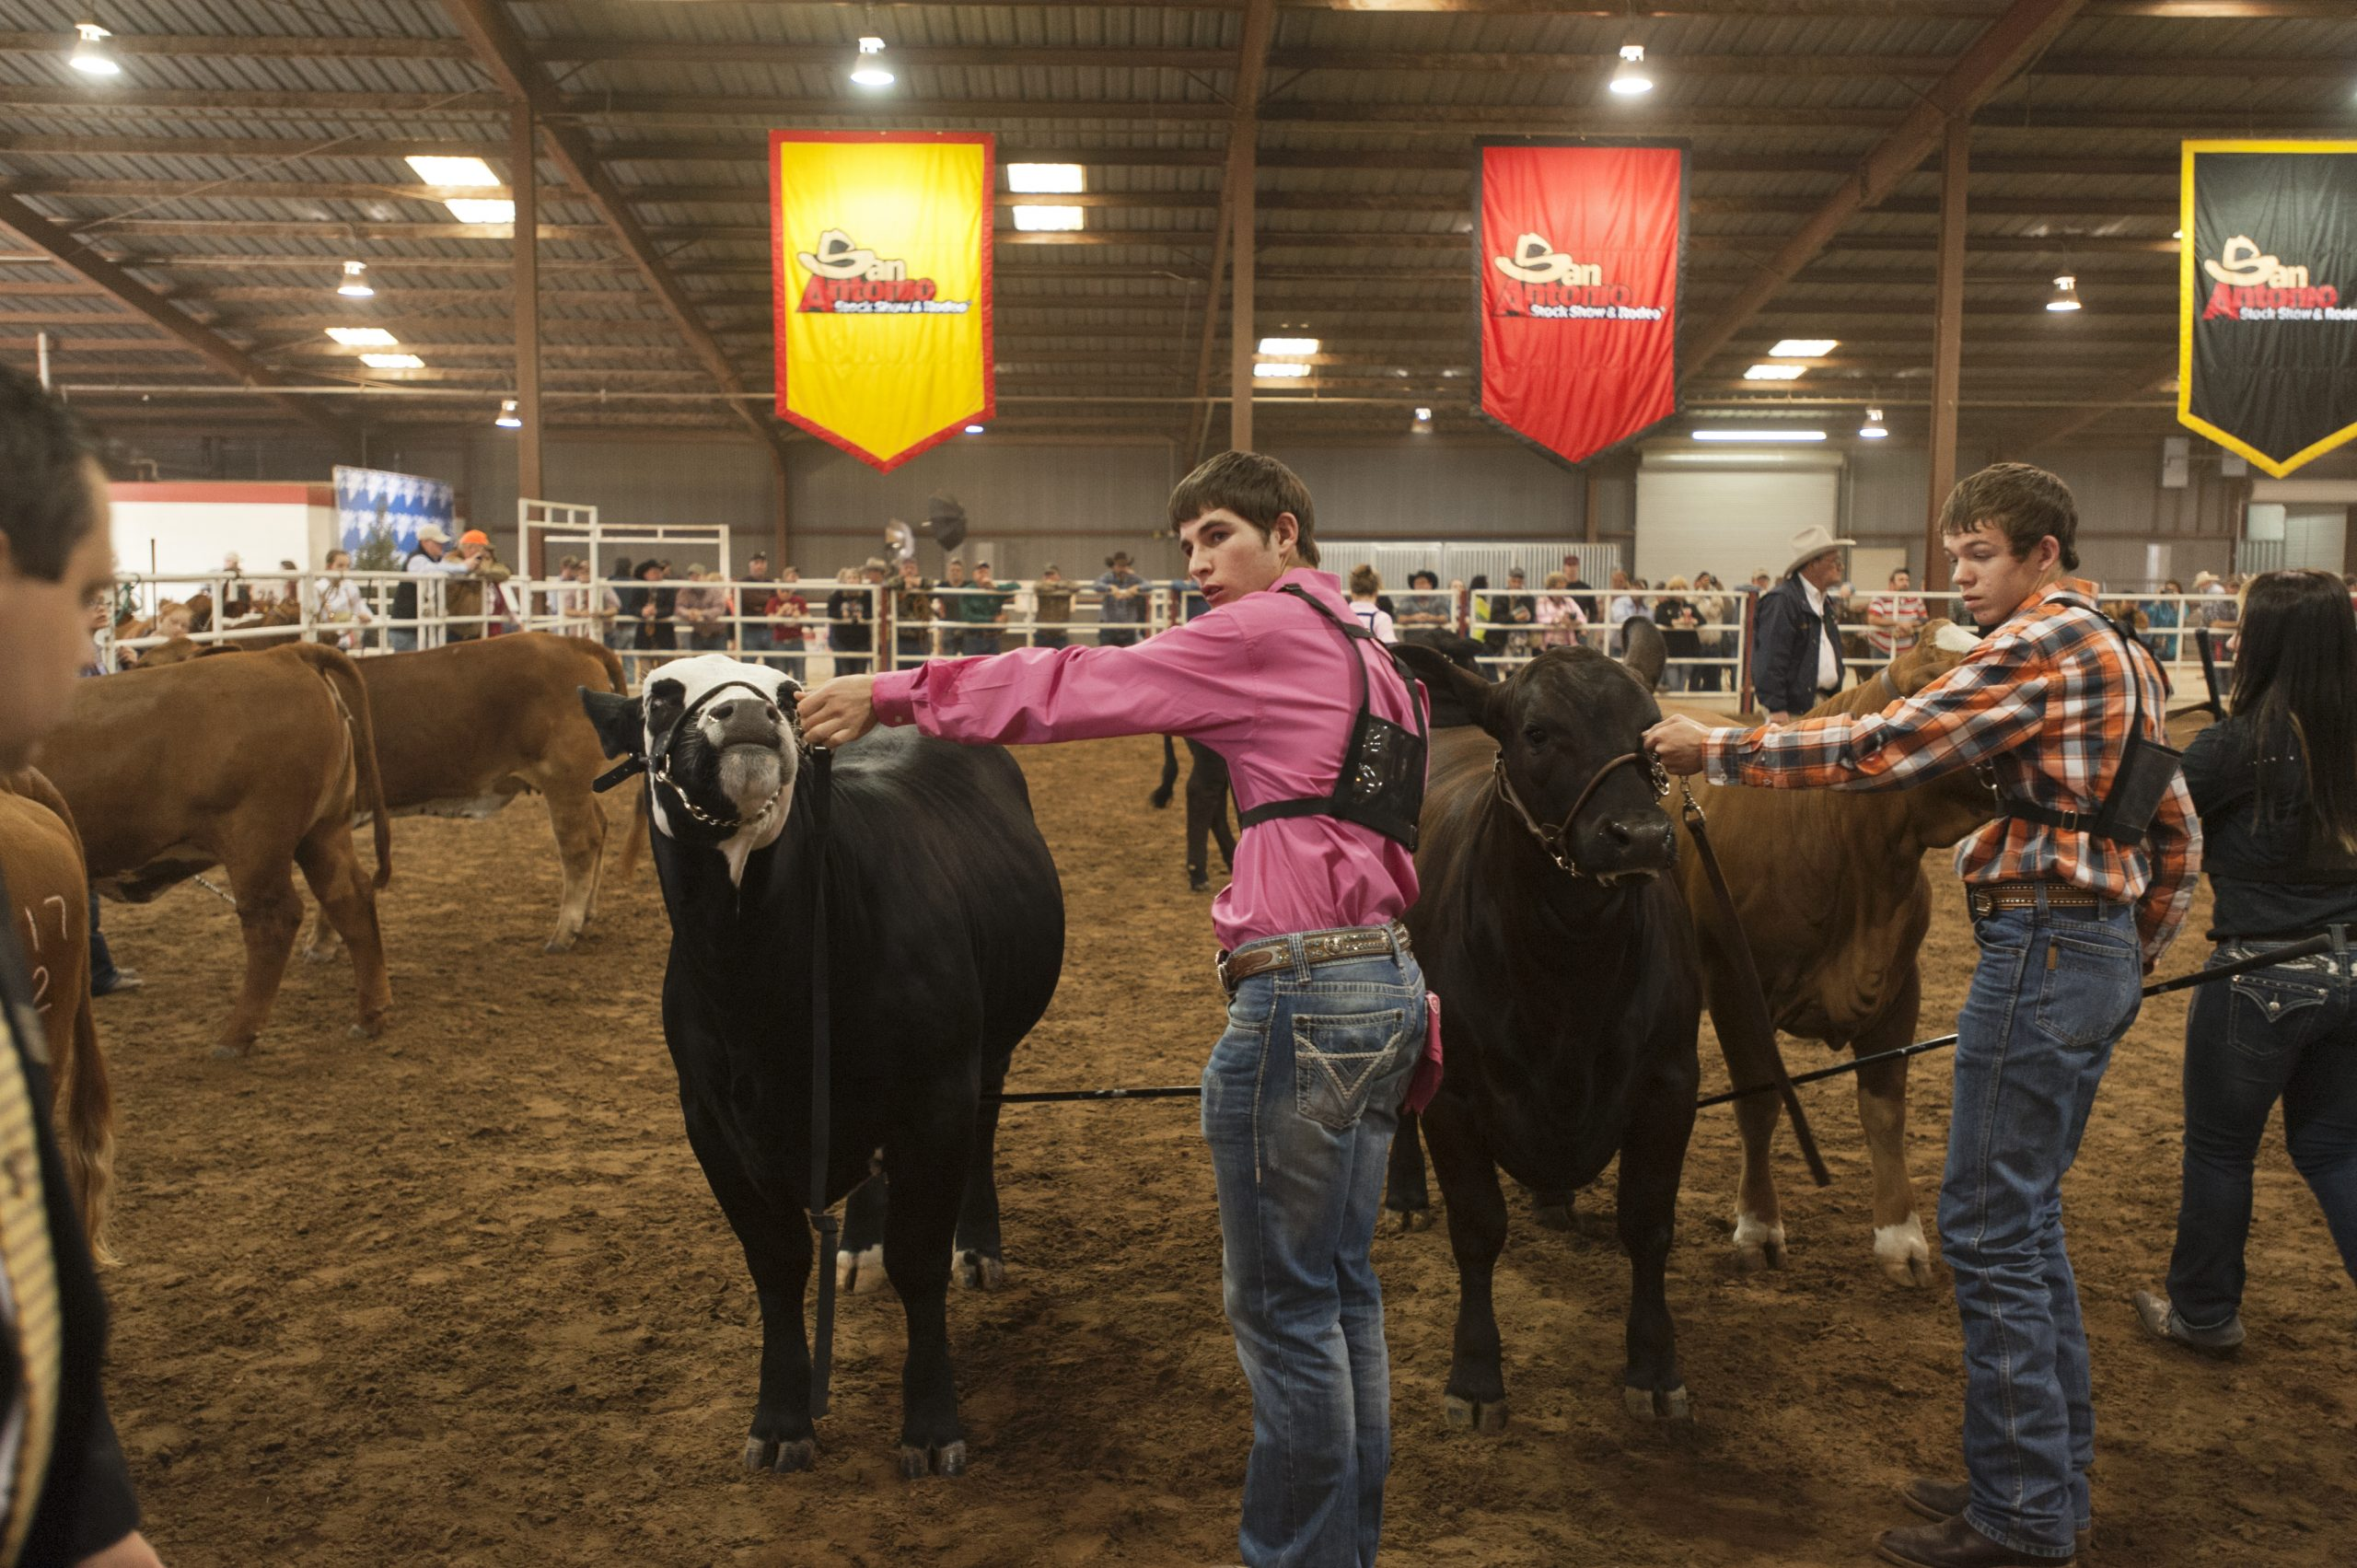 A young man presents his cattle at the 2013 San Antonio Stock Show and Rodeo. Photo by Corey Leamon.